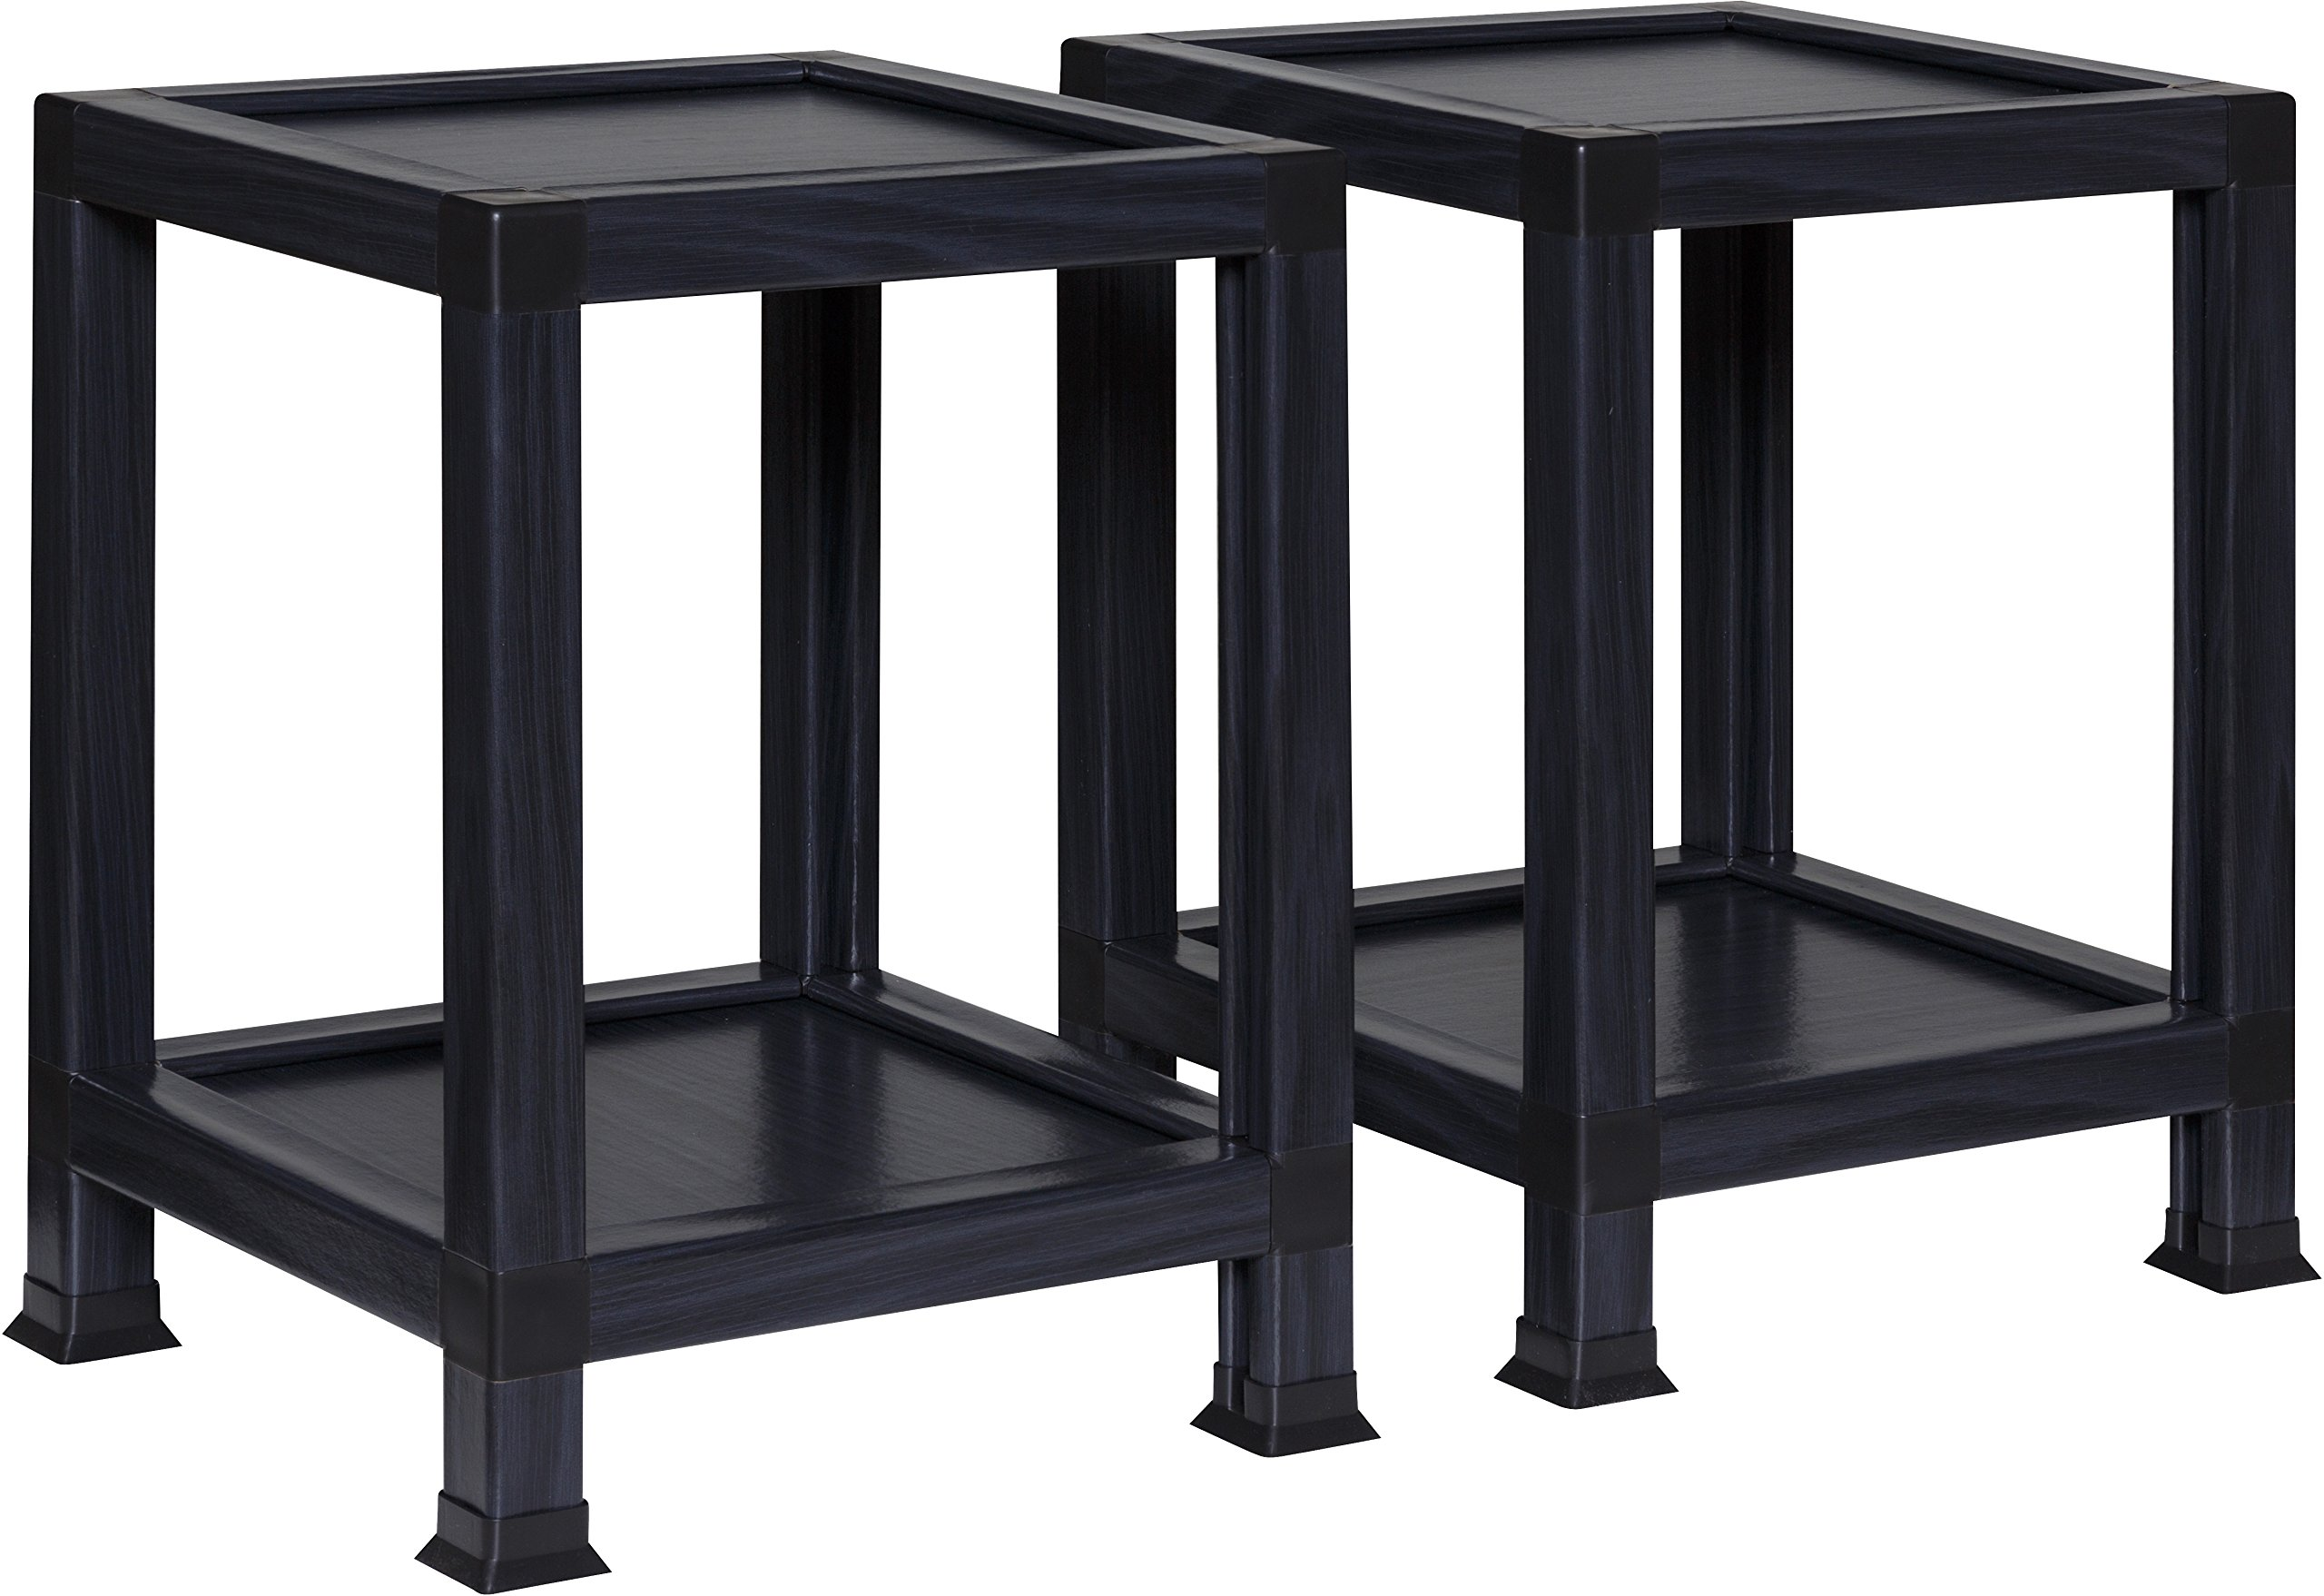 OneSpace 100% Recycled Paper End Tables, Black (Set of 2)